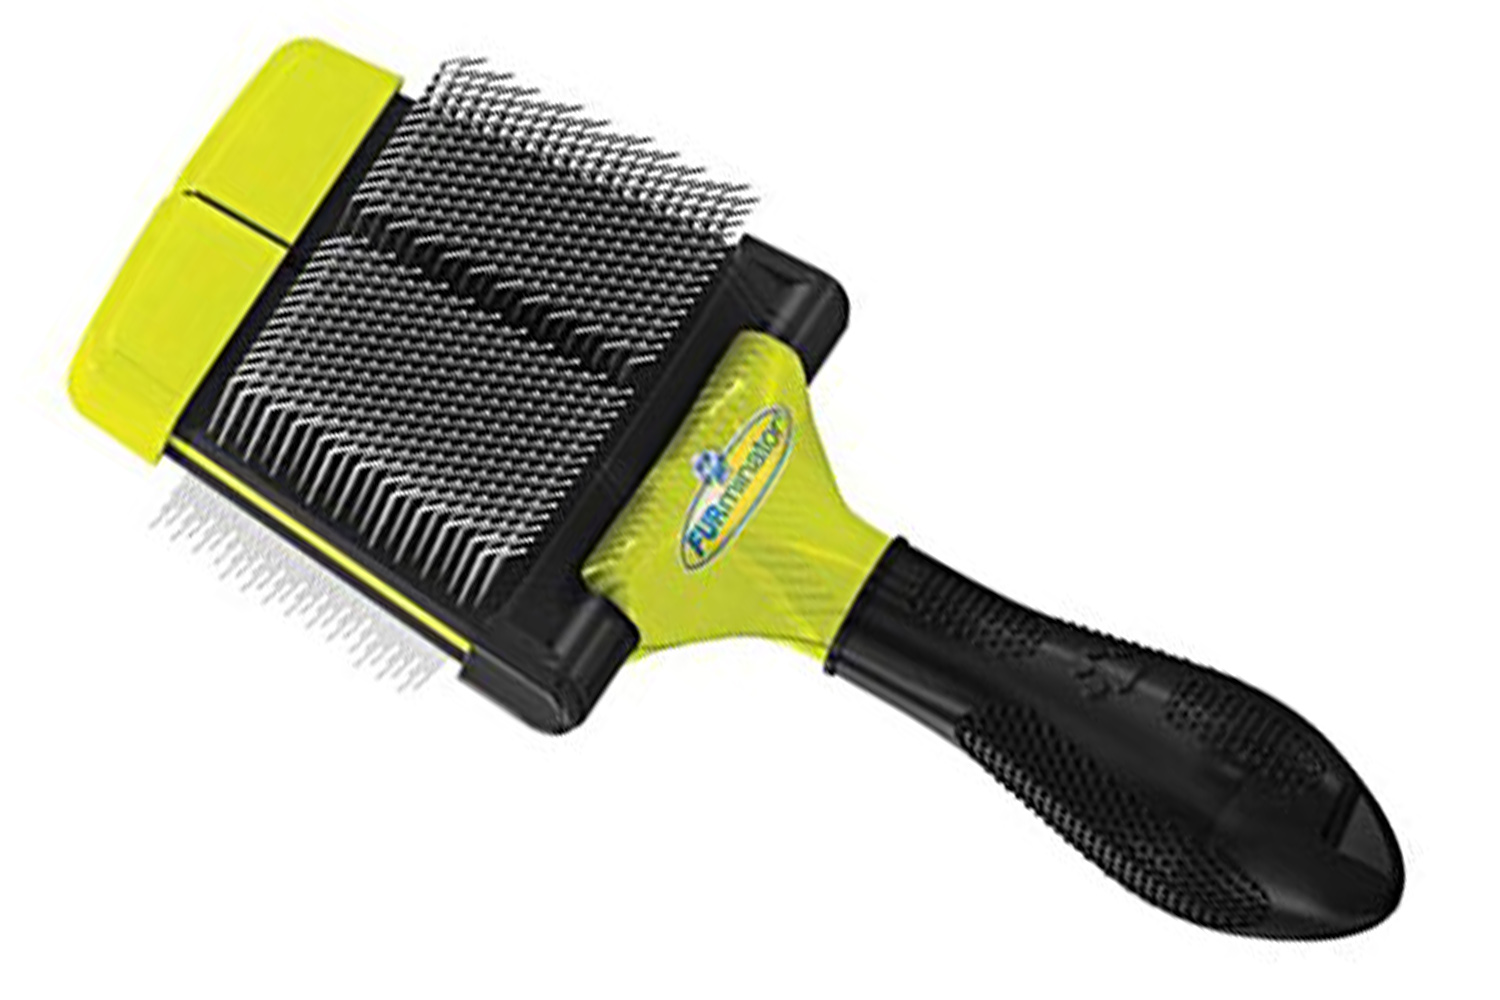 FURminator Poodle Slicker Brush